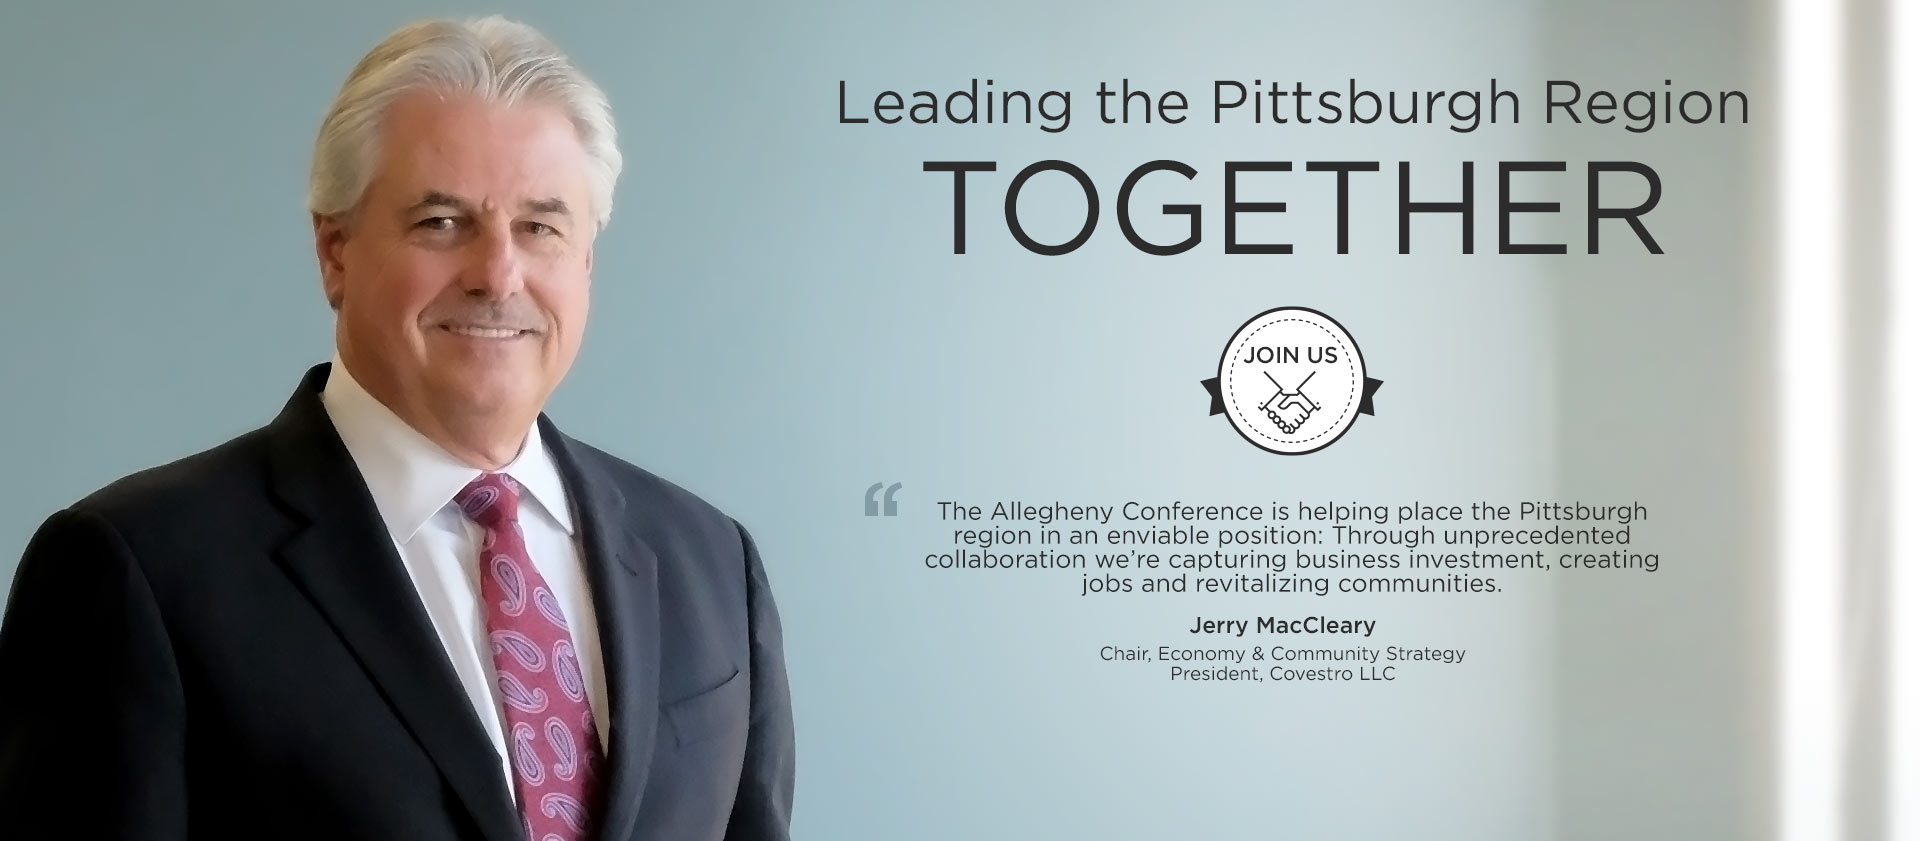 Jerry MacCleary – Chair, Economy & Community Strategy – President, Covestro LLC